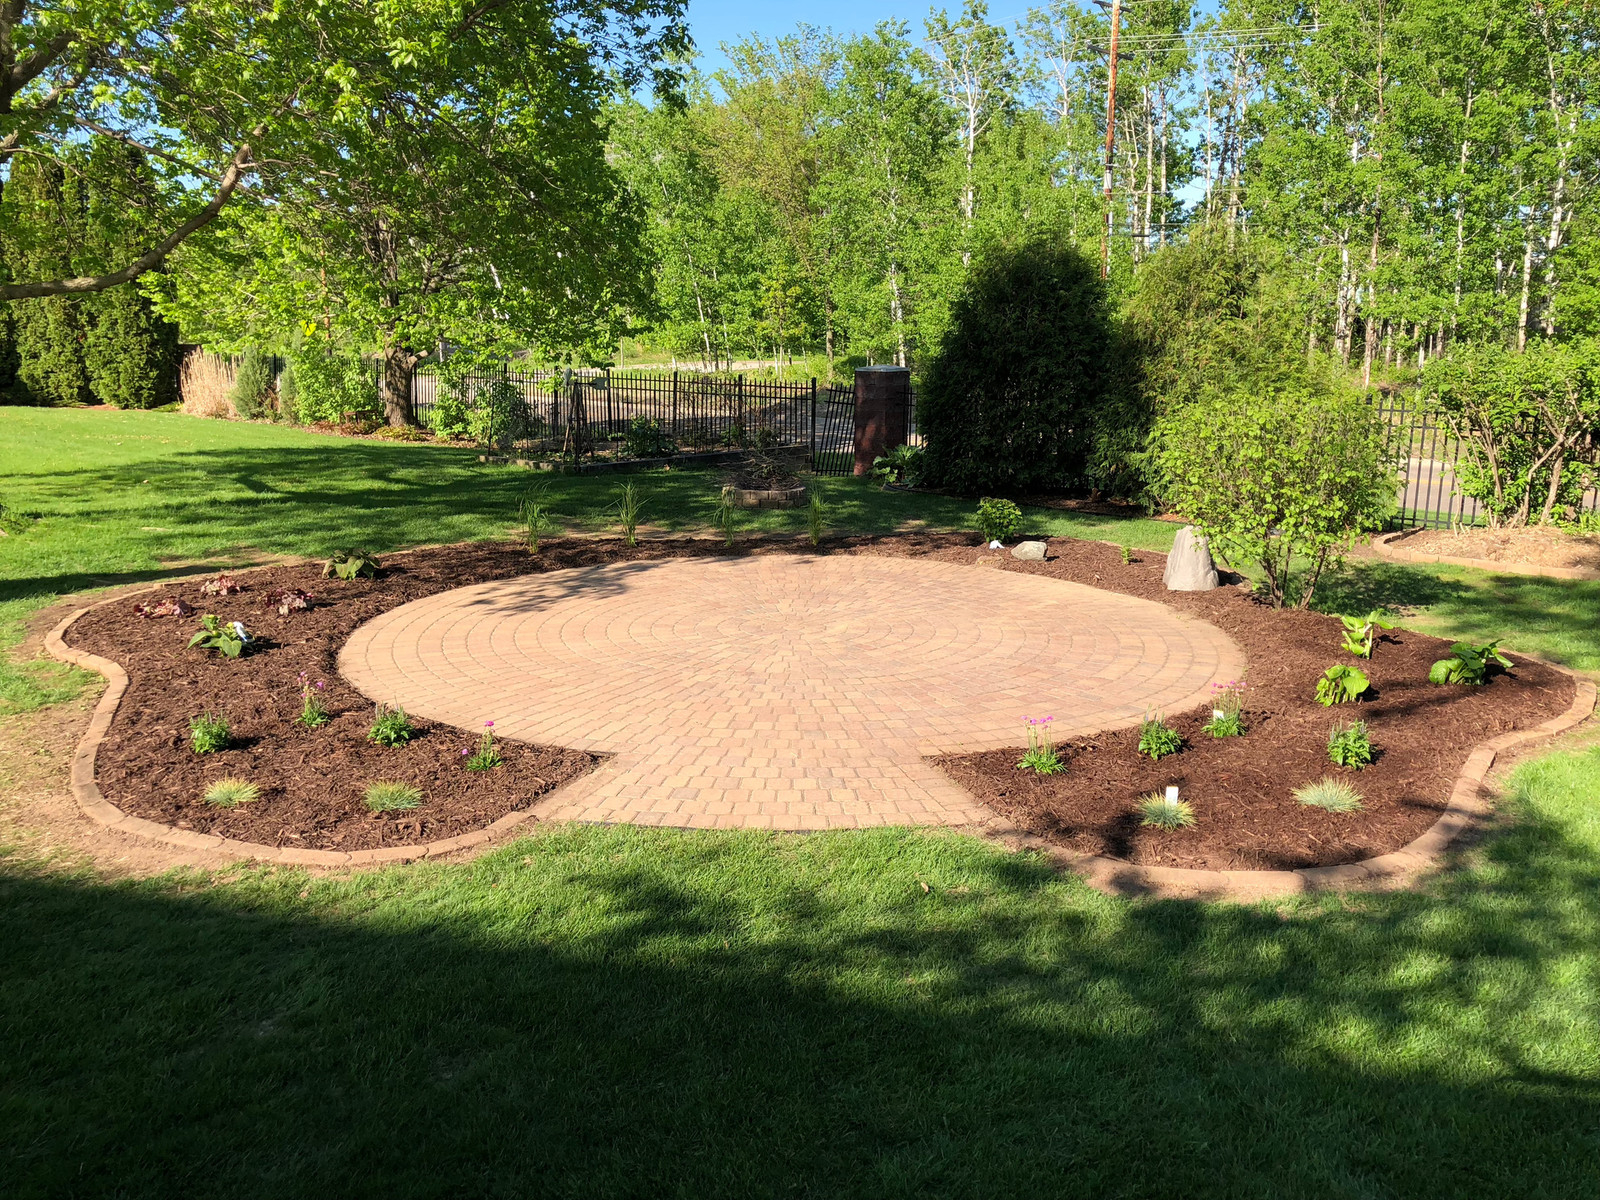 Backyard Paradise intended for Backyard Paradise Landscaping